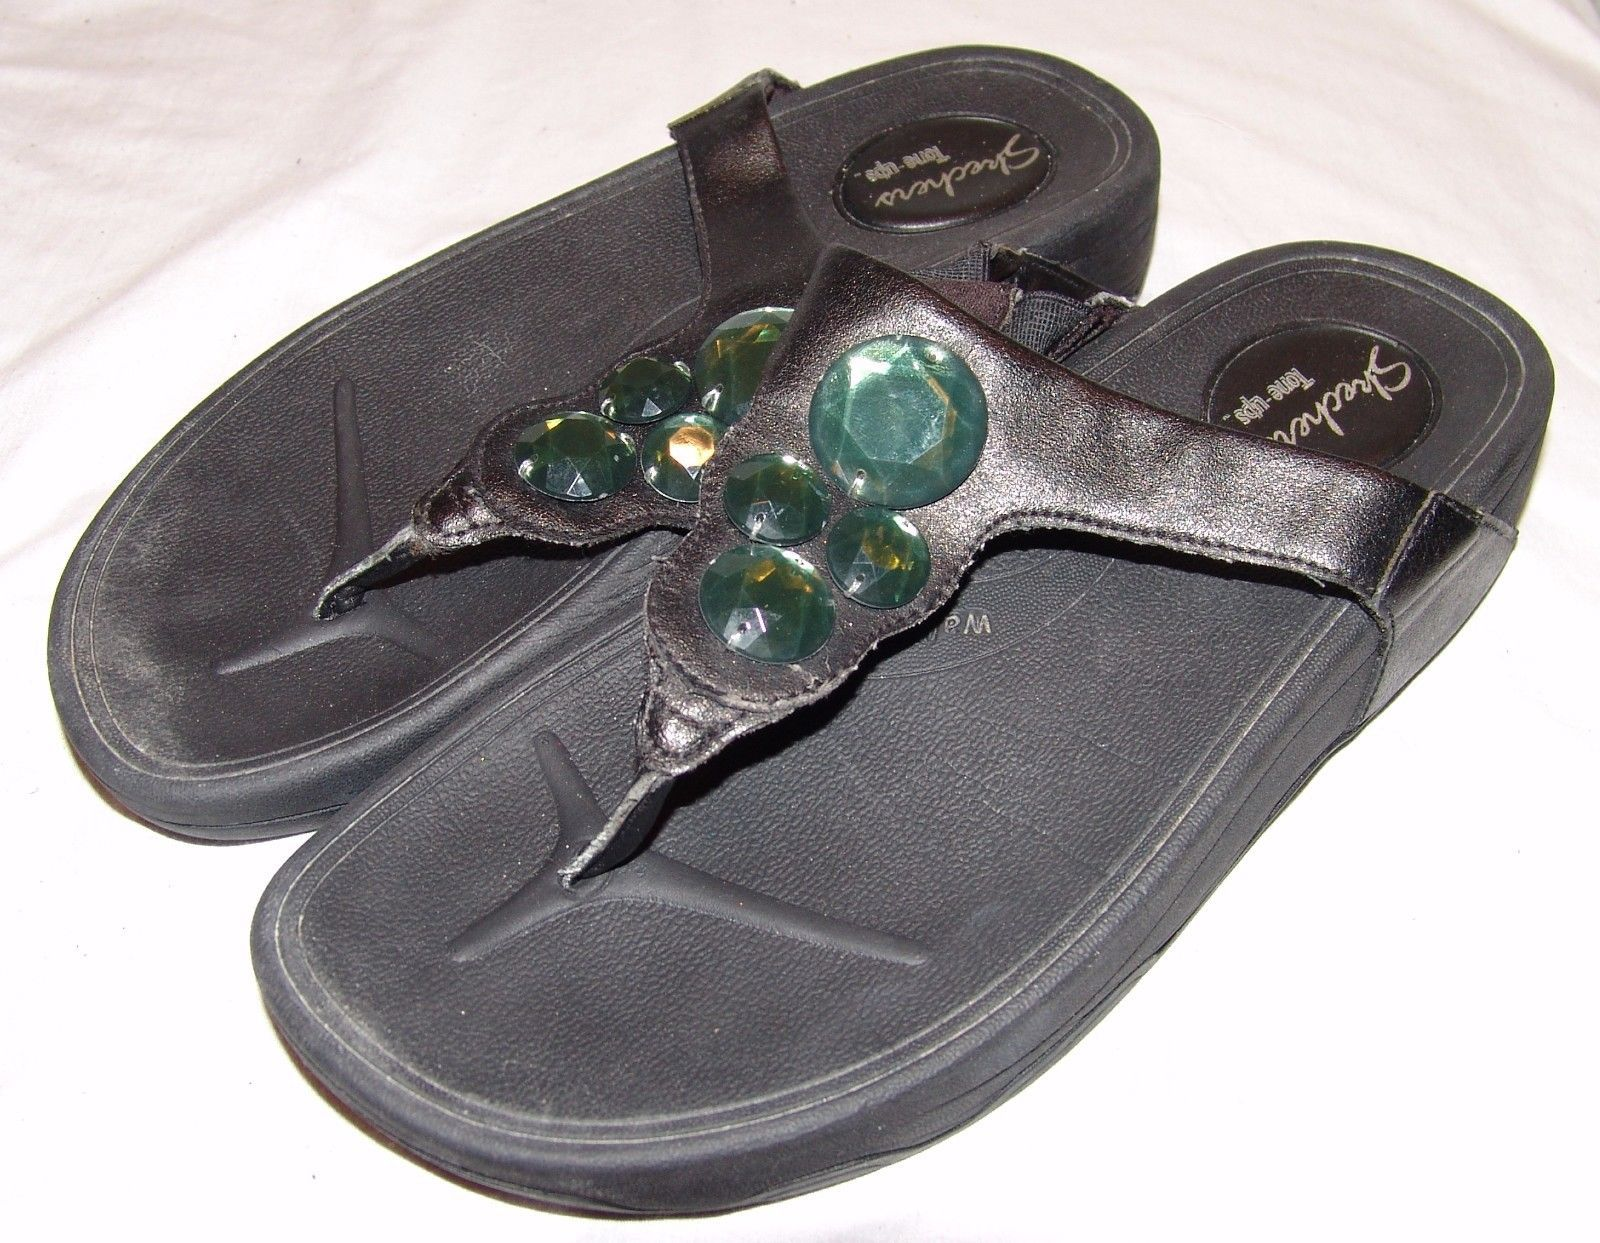 Skechers Tone Ups Flip Flops 8 8.5 Black w/ Green Gemstones Sandals Shoes